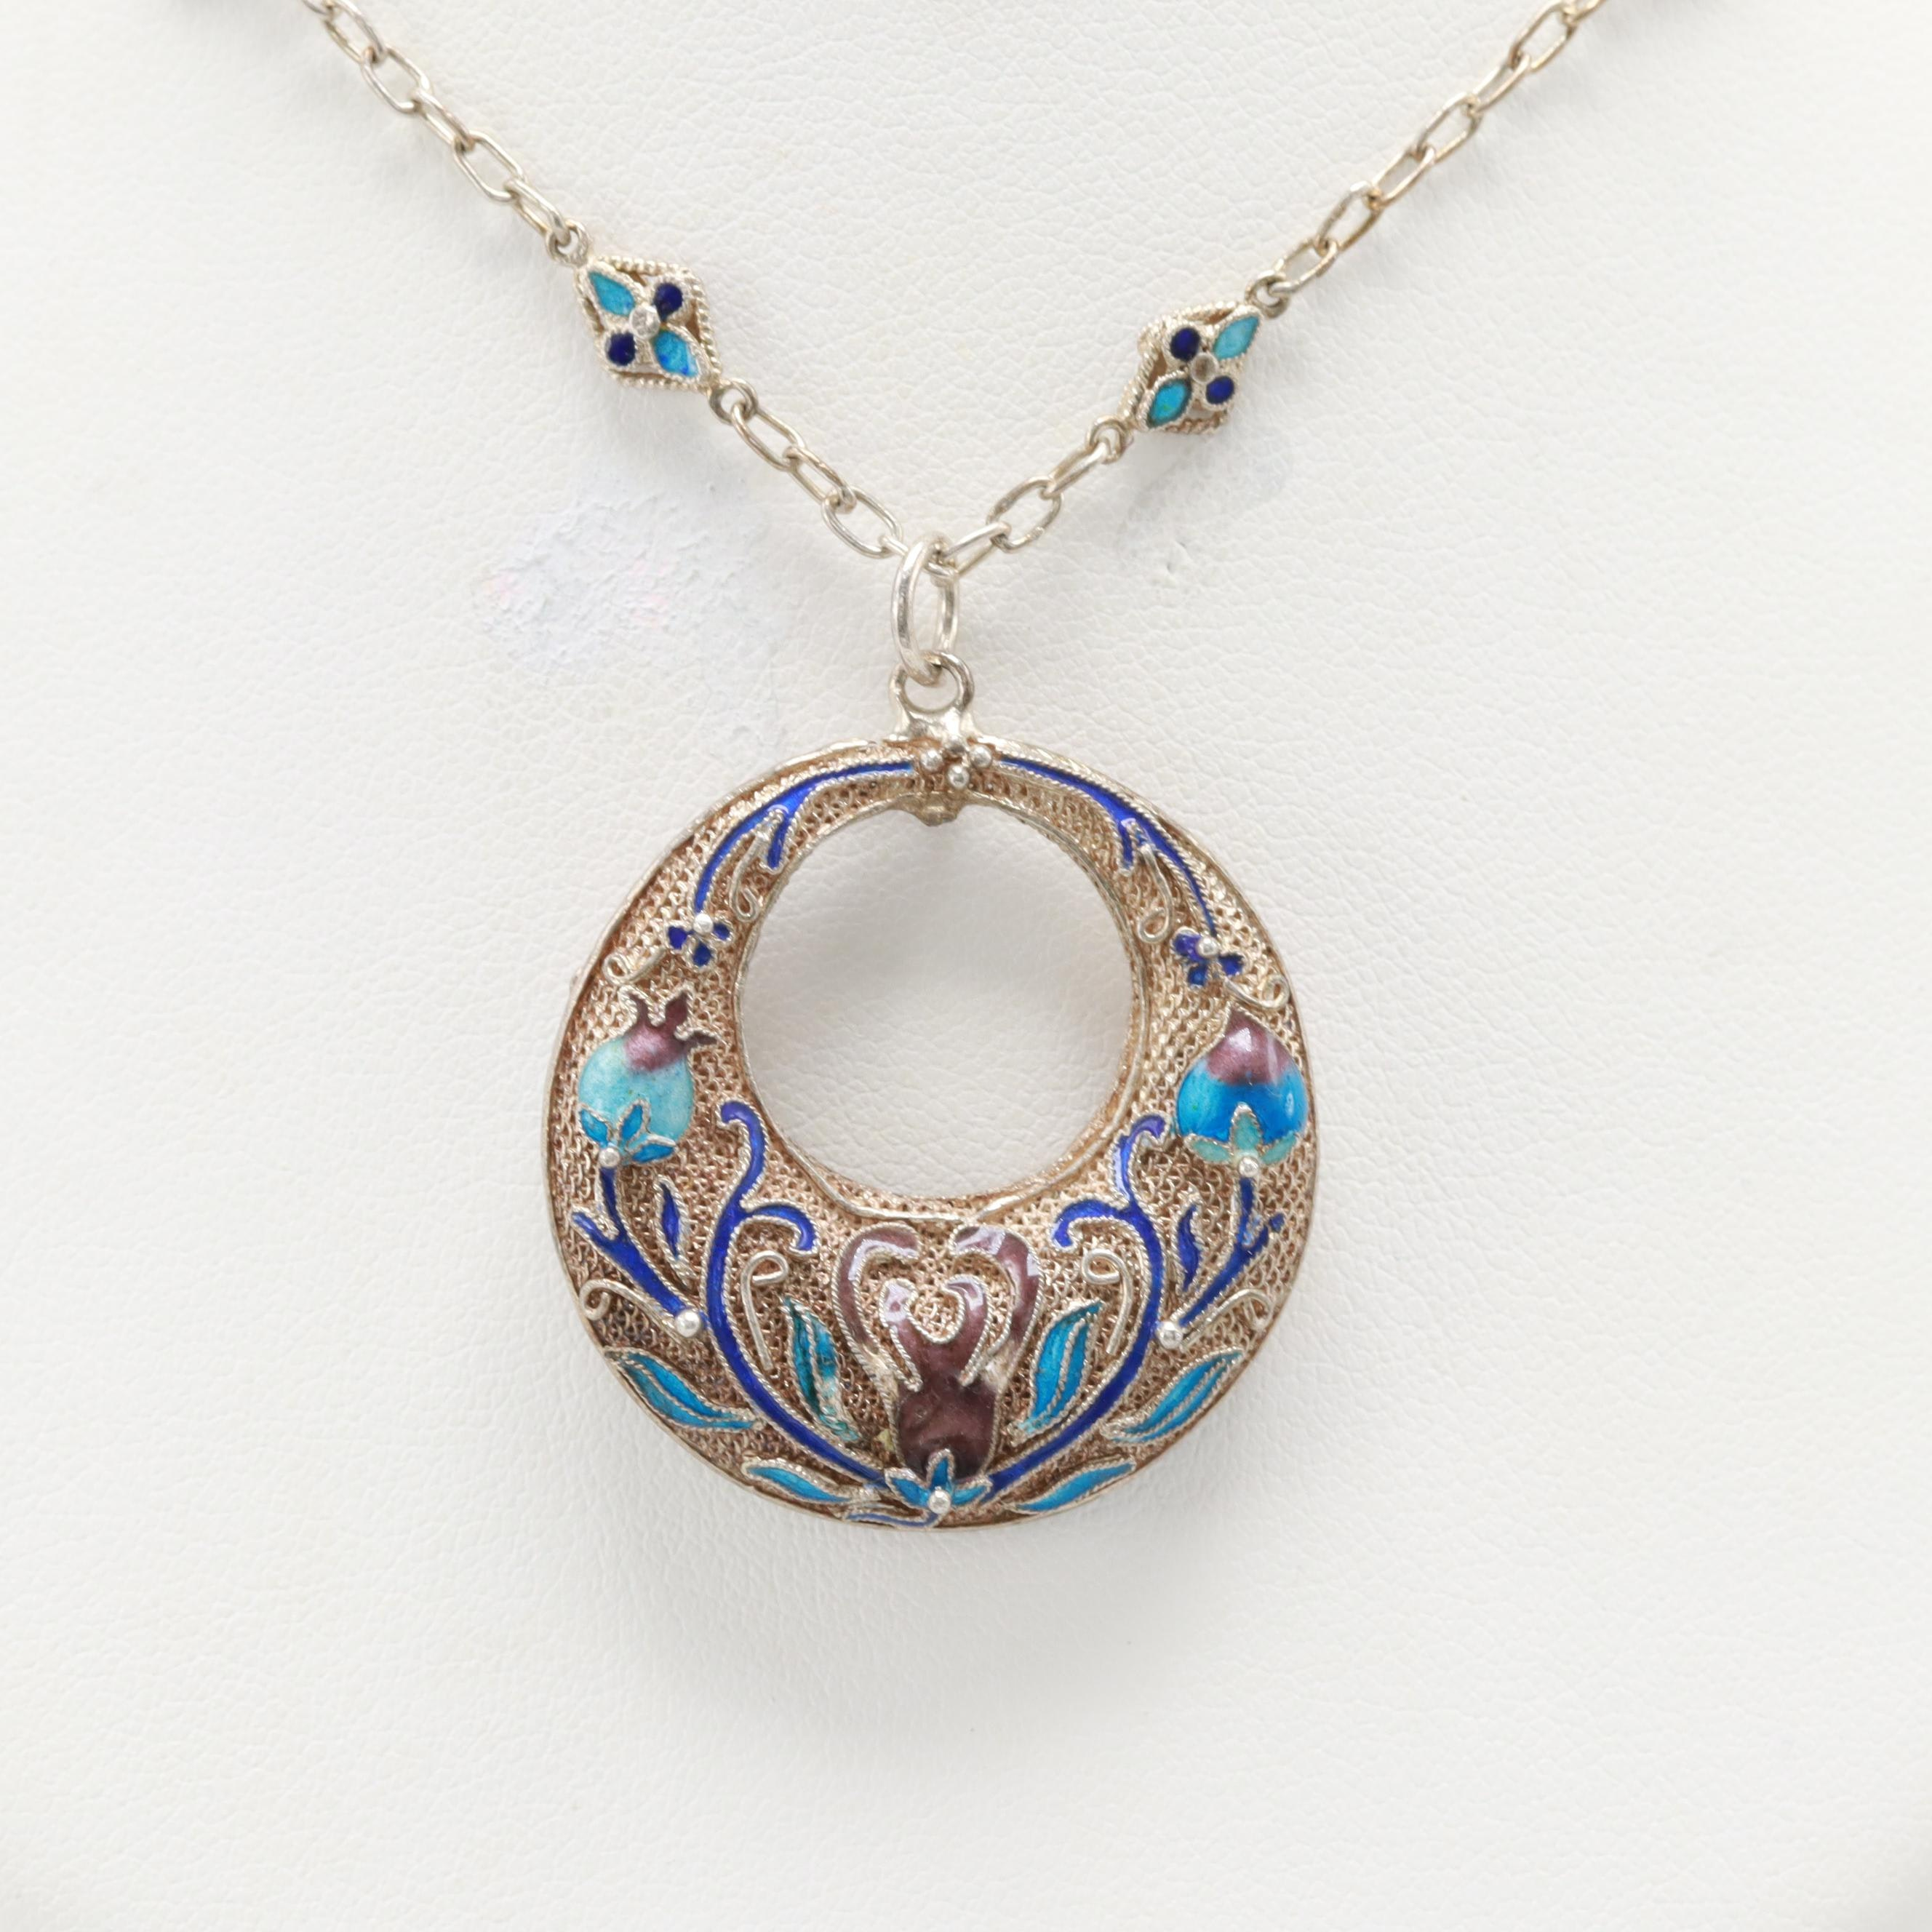 Vintage Cloisonné and Sterling Silver Filigree Pendant Necklace